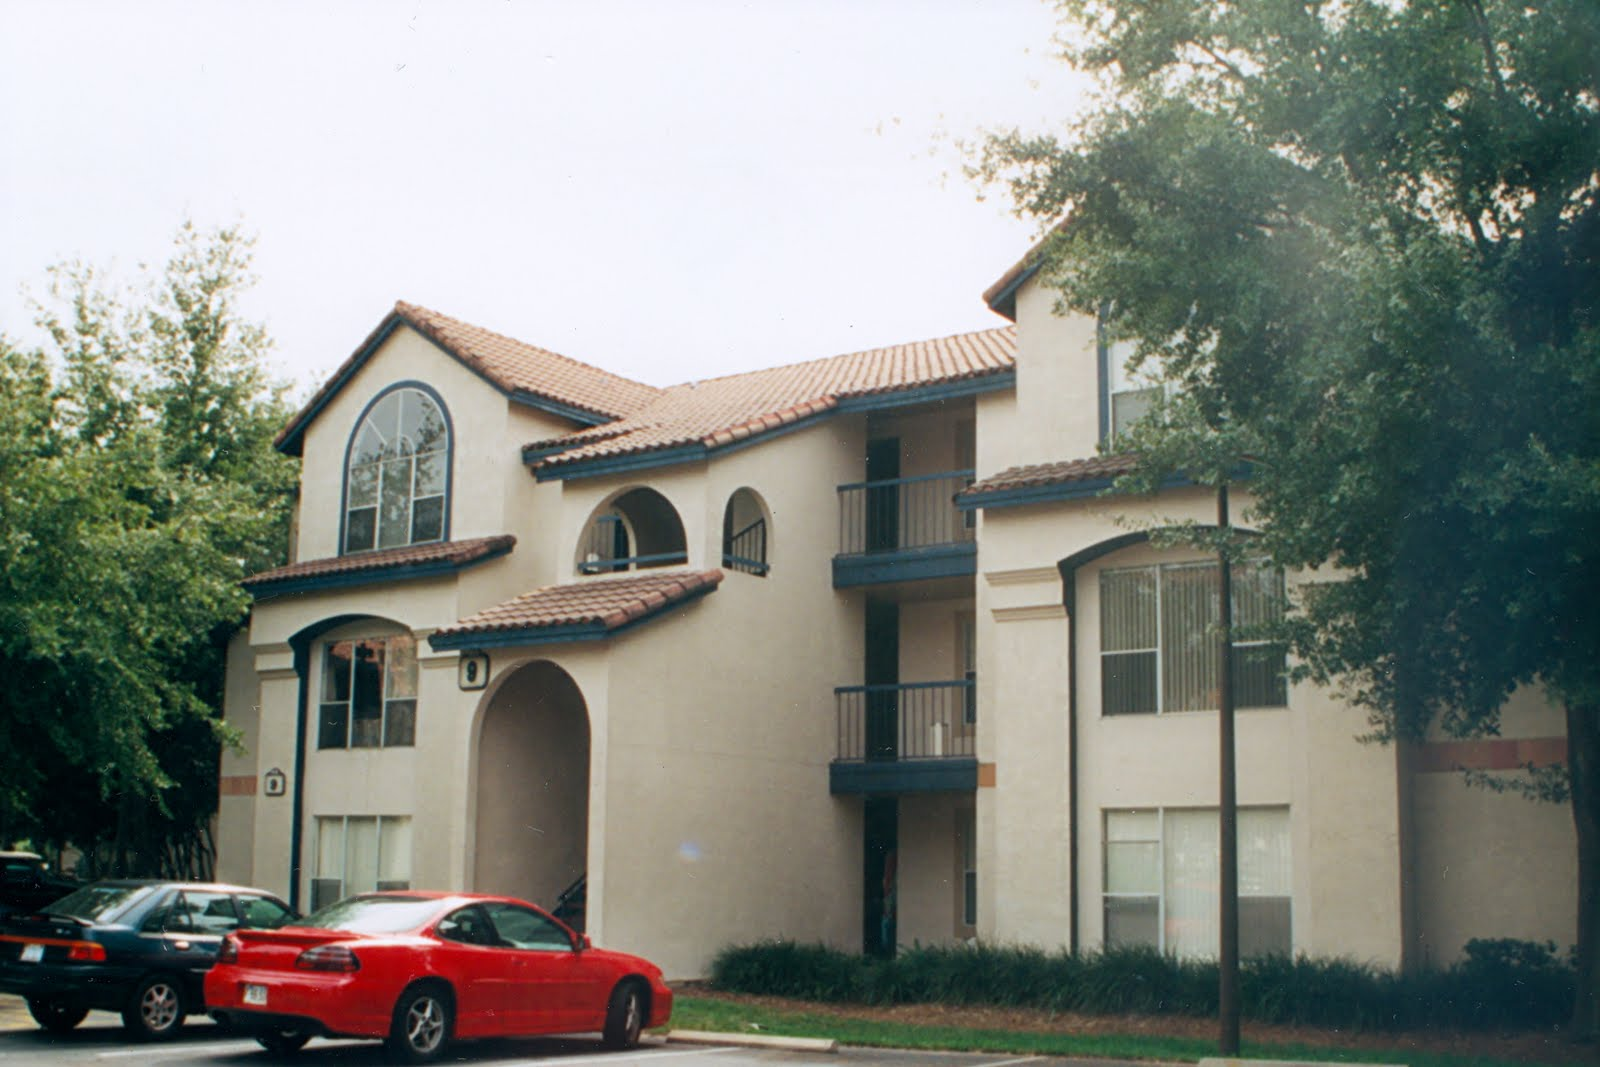 Nice Apartment Complex an introduction to disney housing (and housing myths debunked